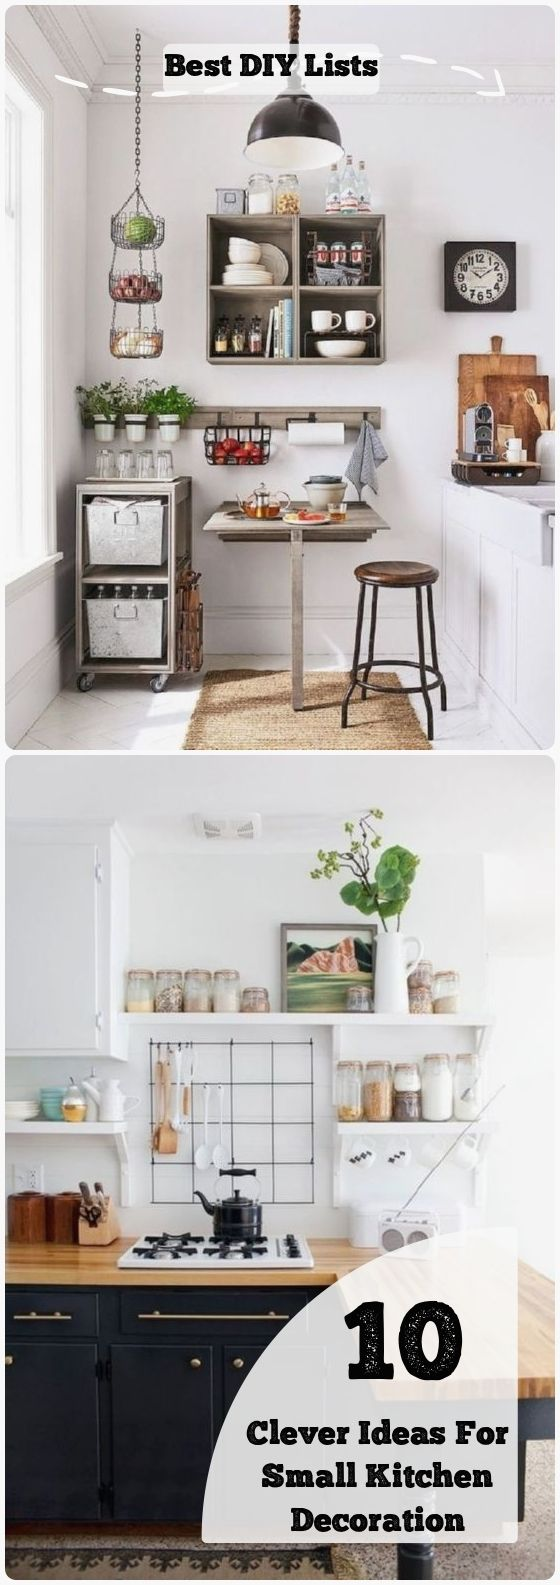 10 Clever Ideas For Small Kitchen Decoration Best Diy Lists Cheap Kitchen Decor Small Kitchen Decor Cheap Apartment Decorating